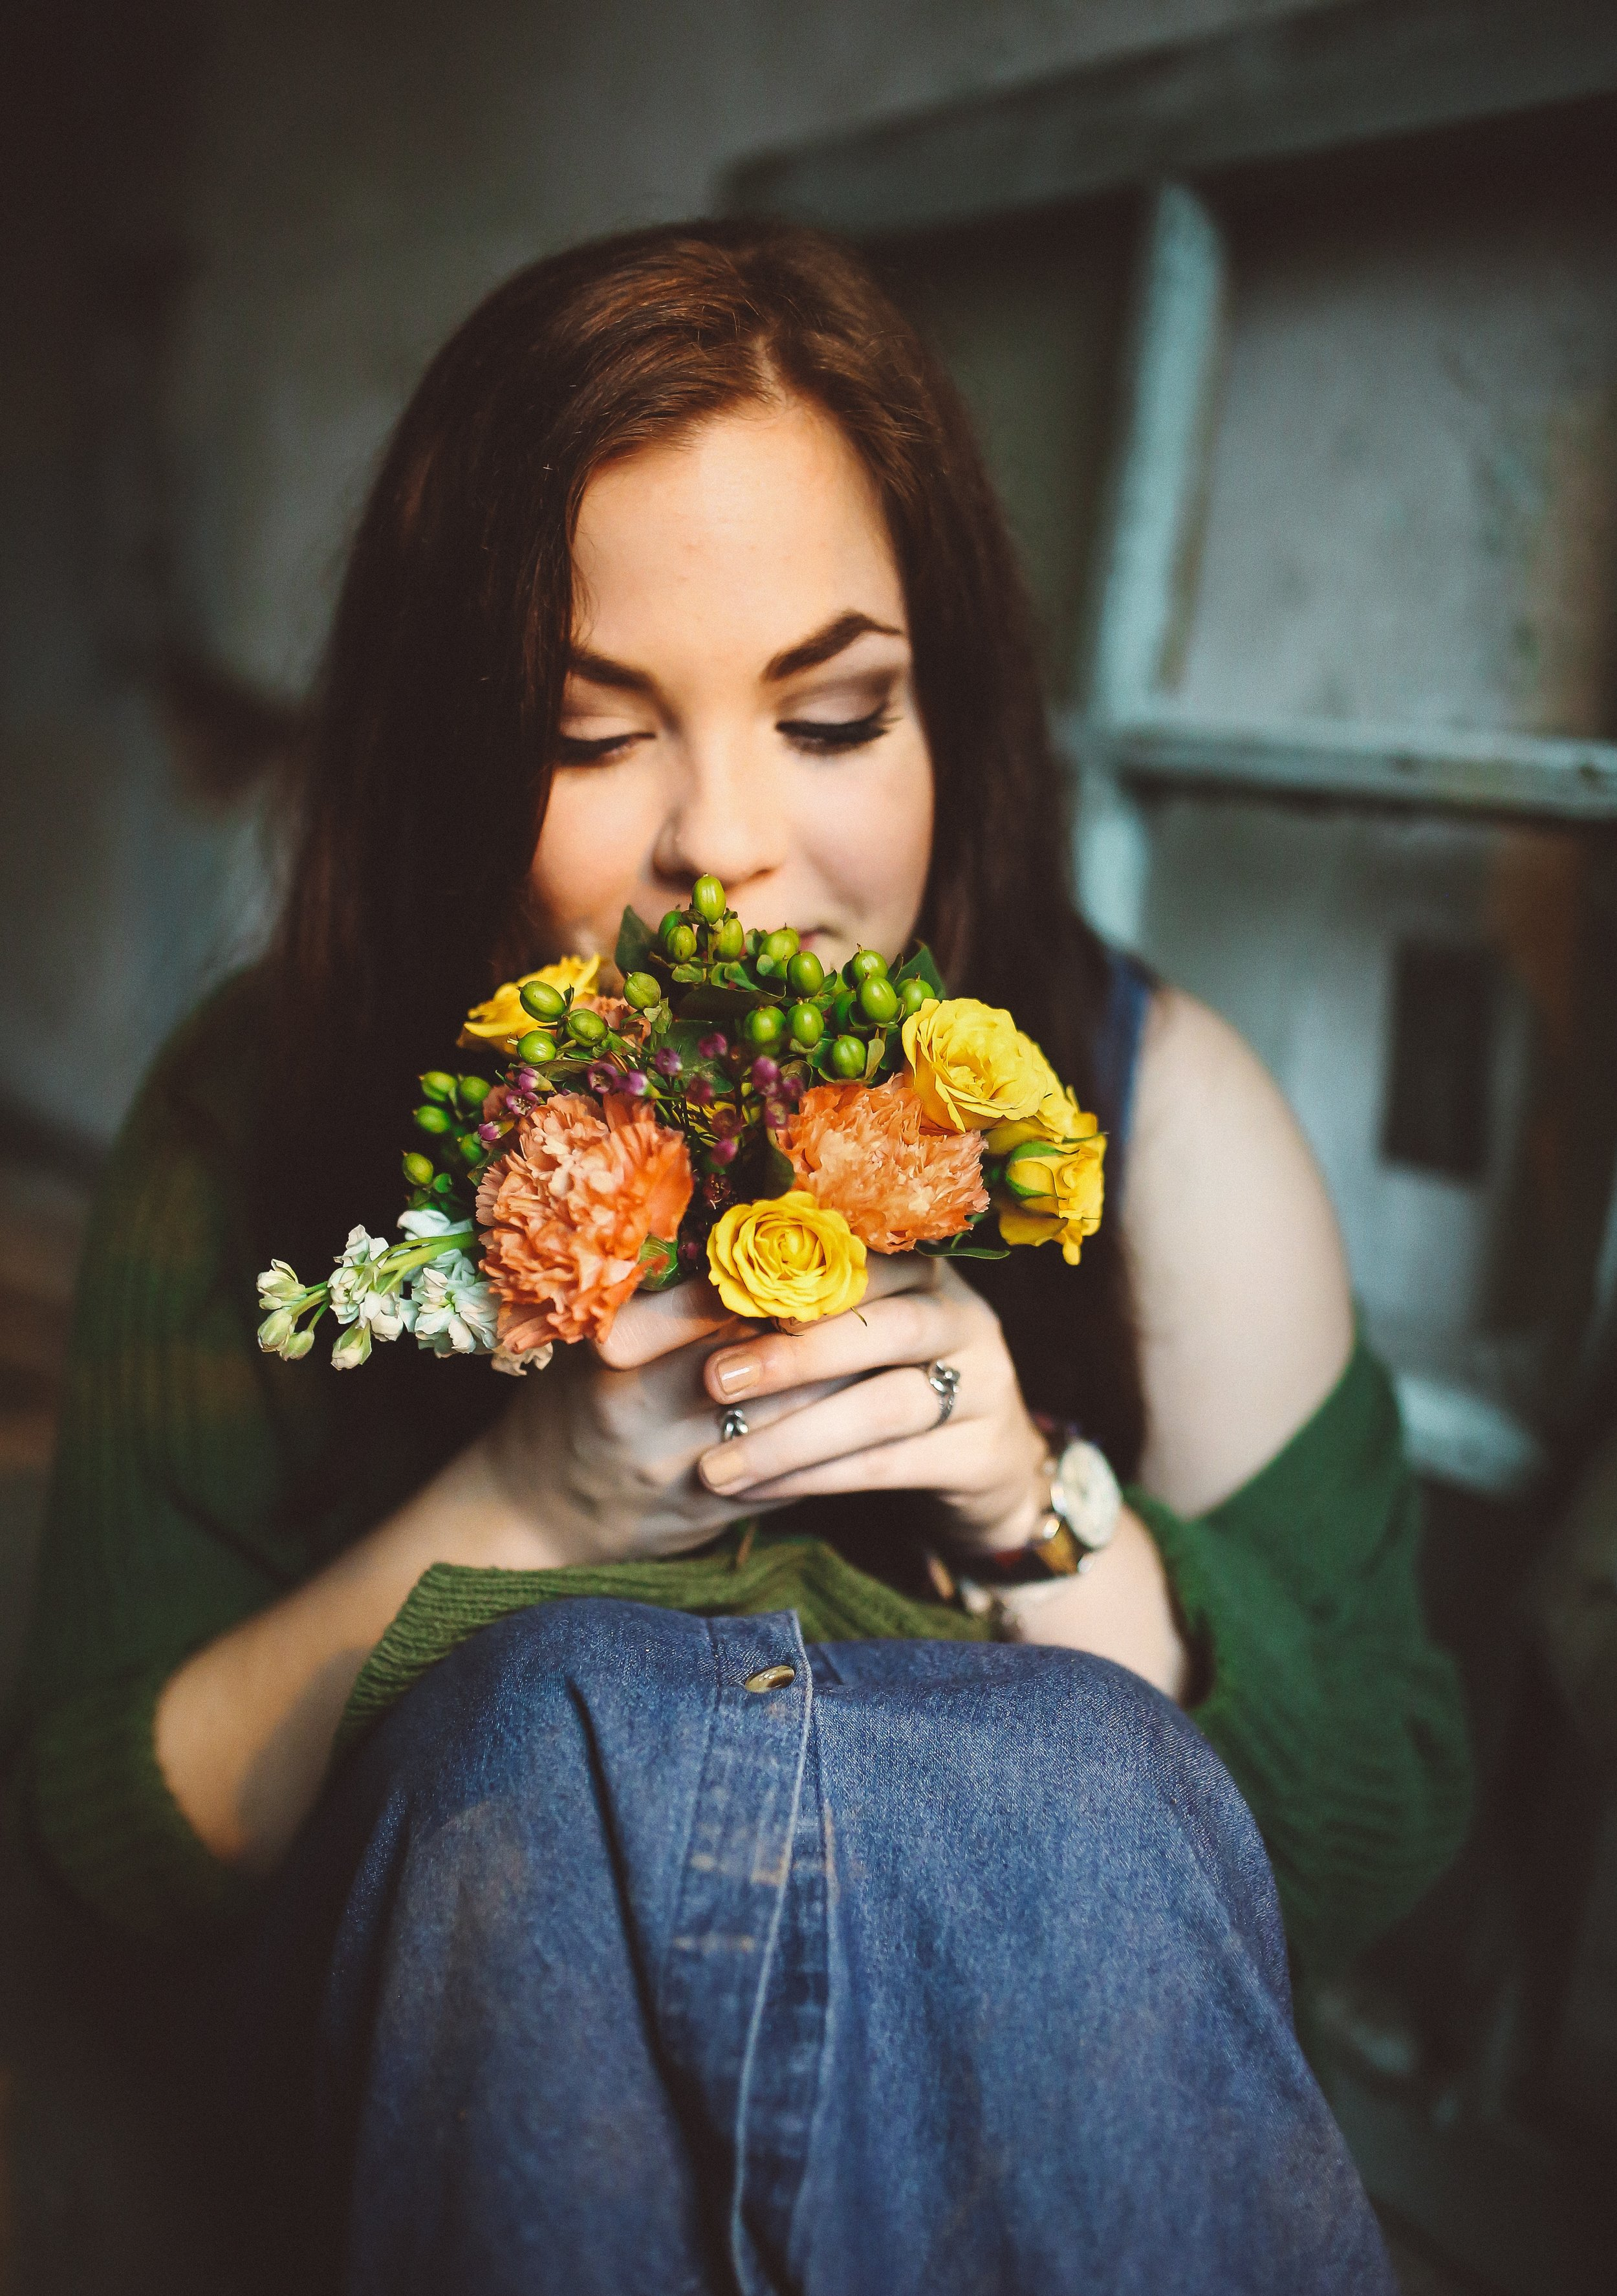 A Picture or a woman smelling the aroma of flowers - danielle-marroquin-16121.jpg